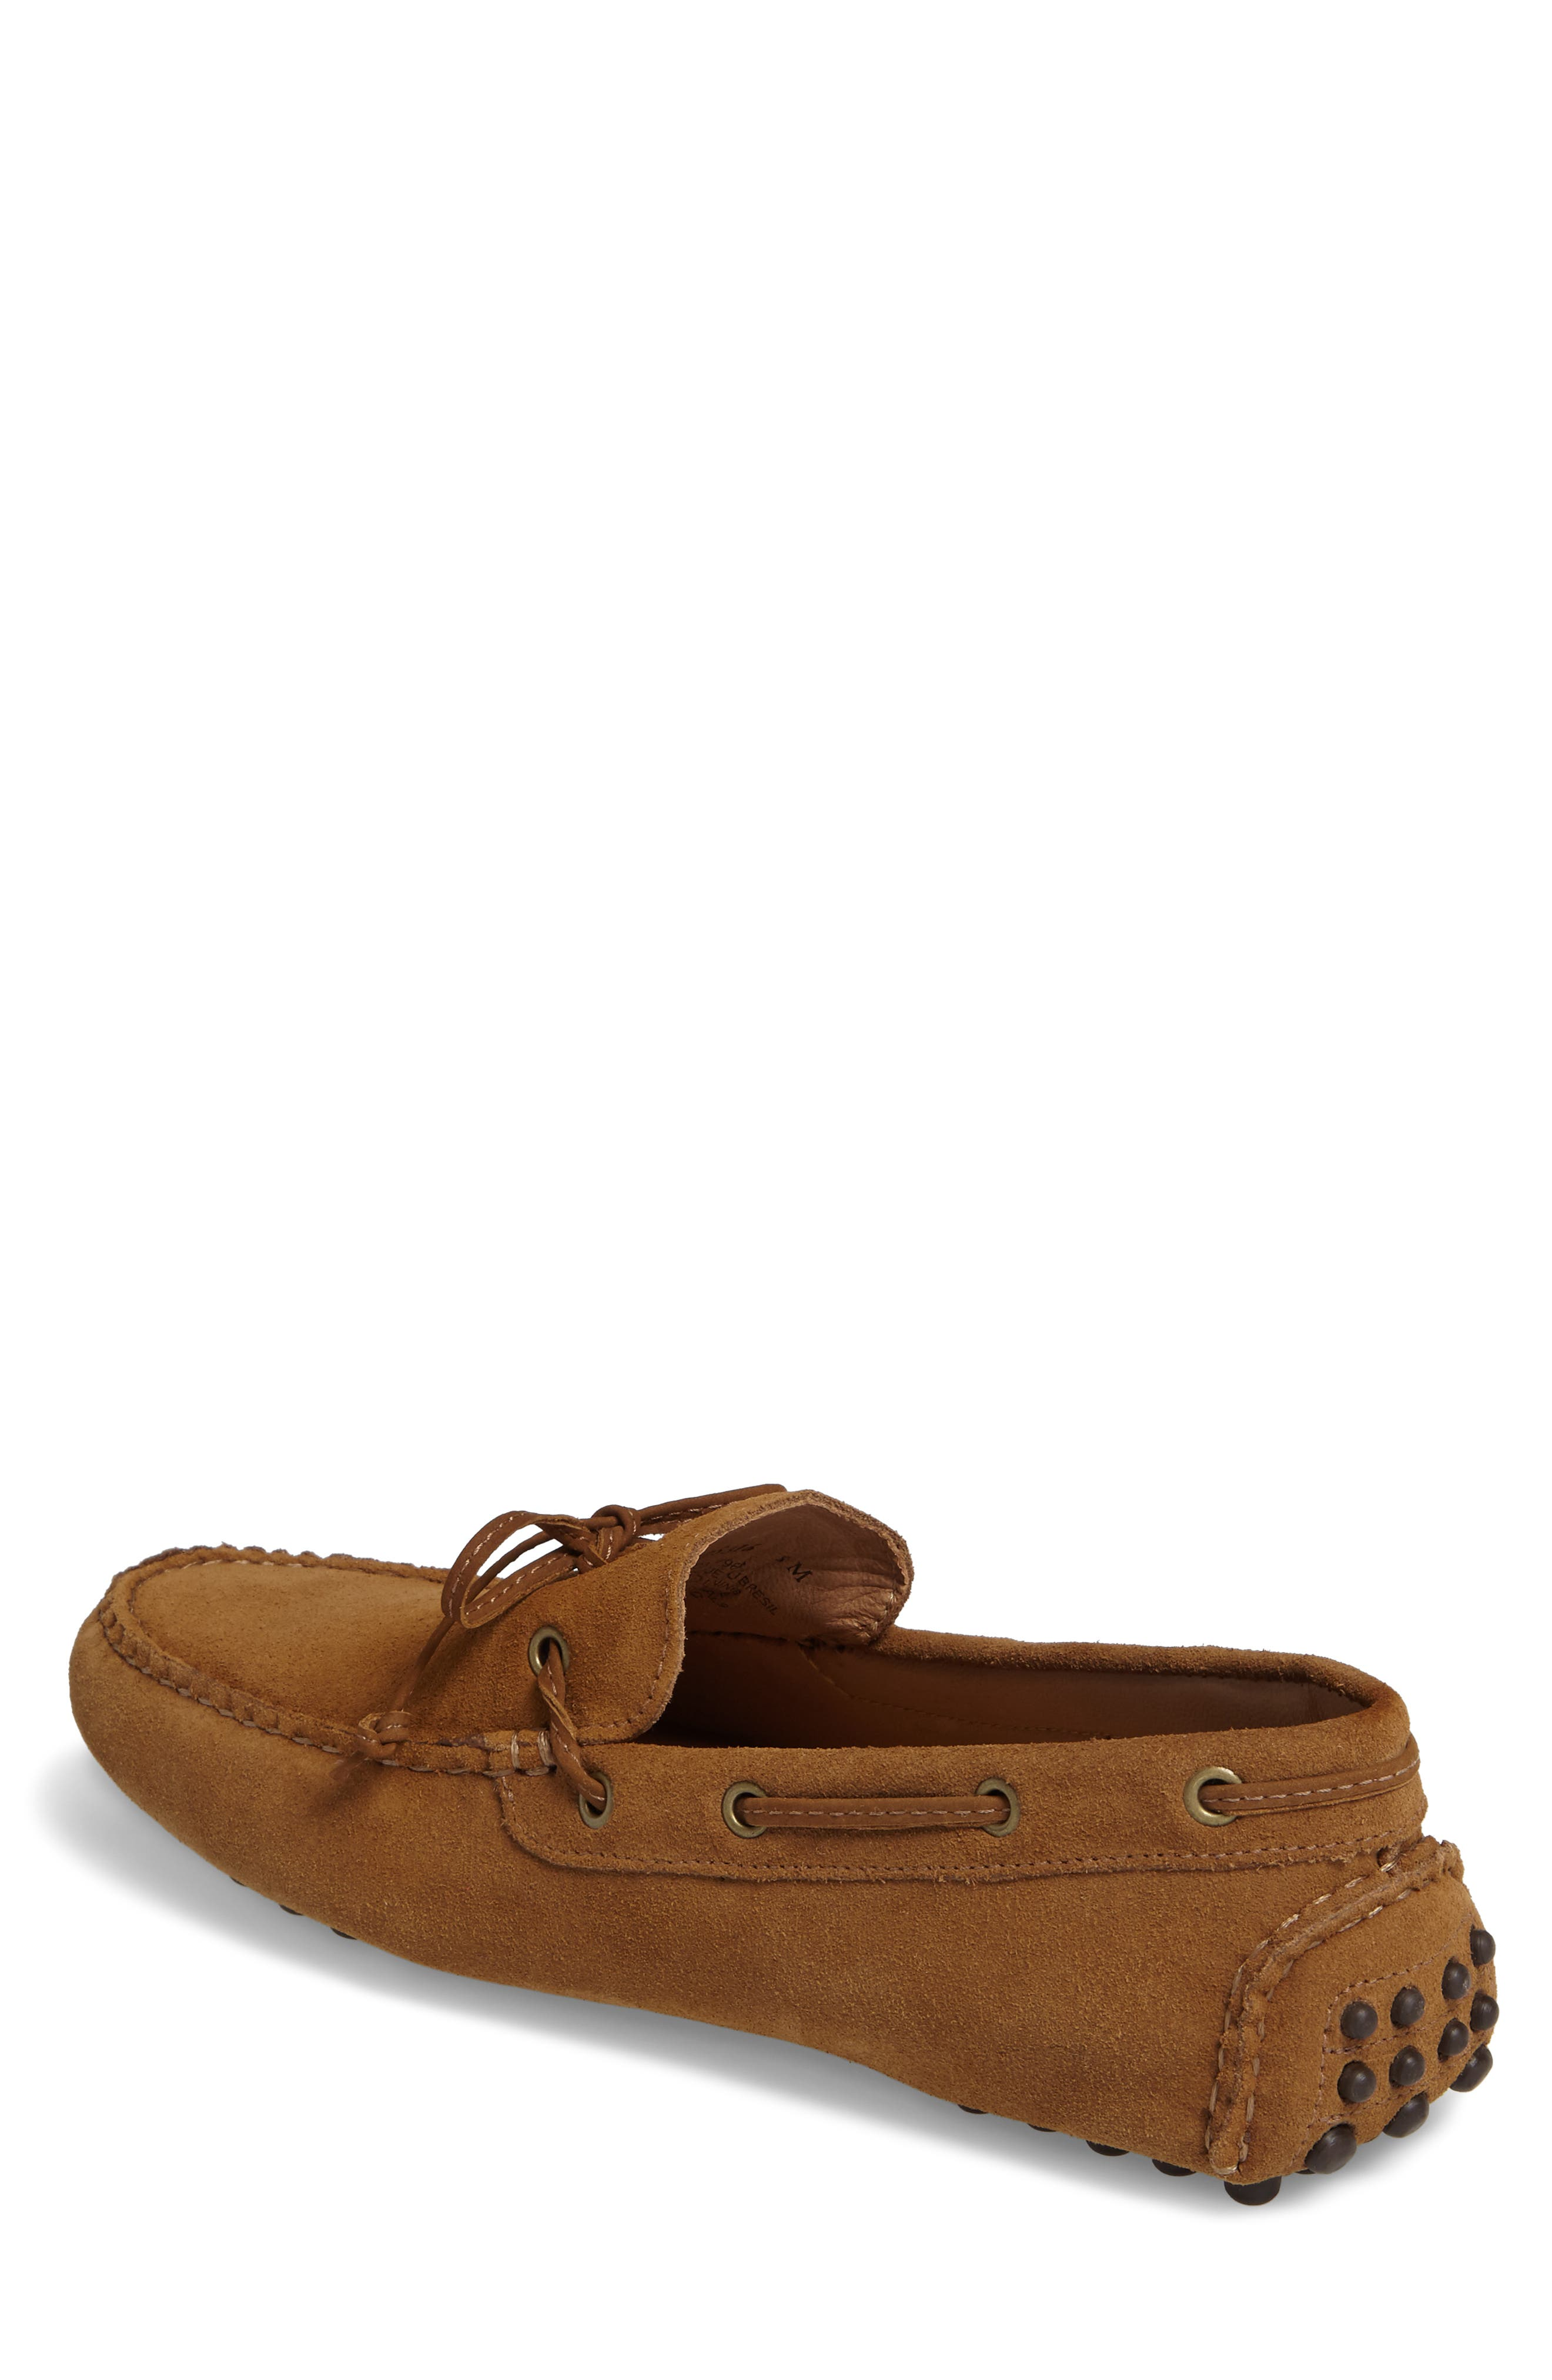 Midland Driving Shoe,                             Alternate thumbnail 7, color,